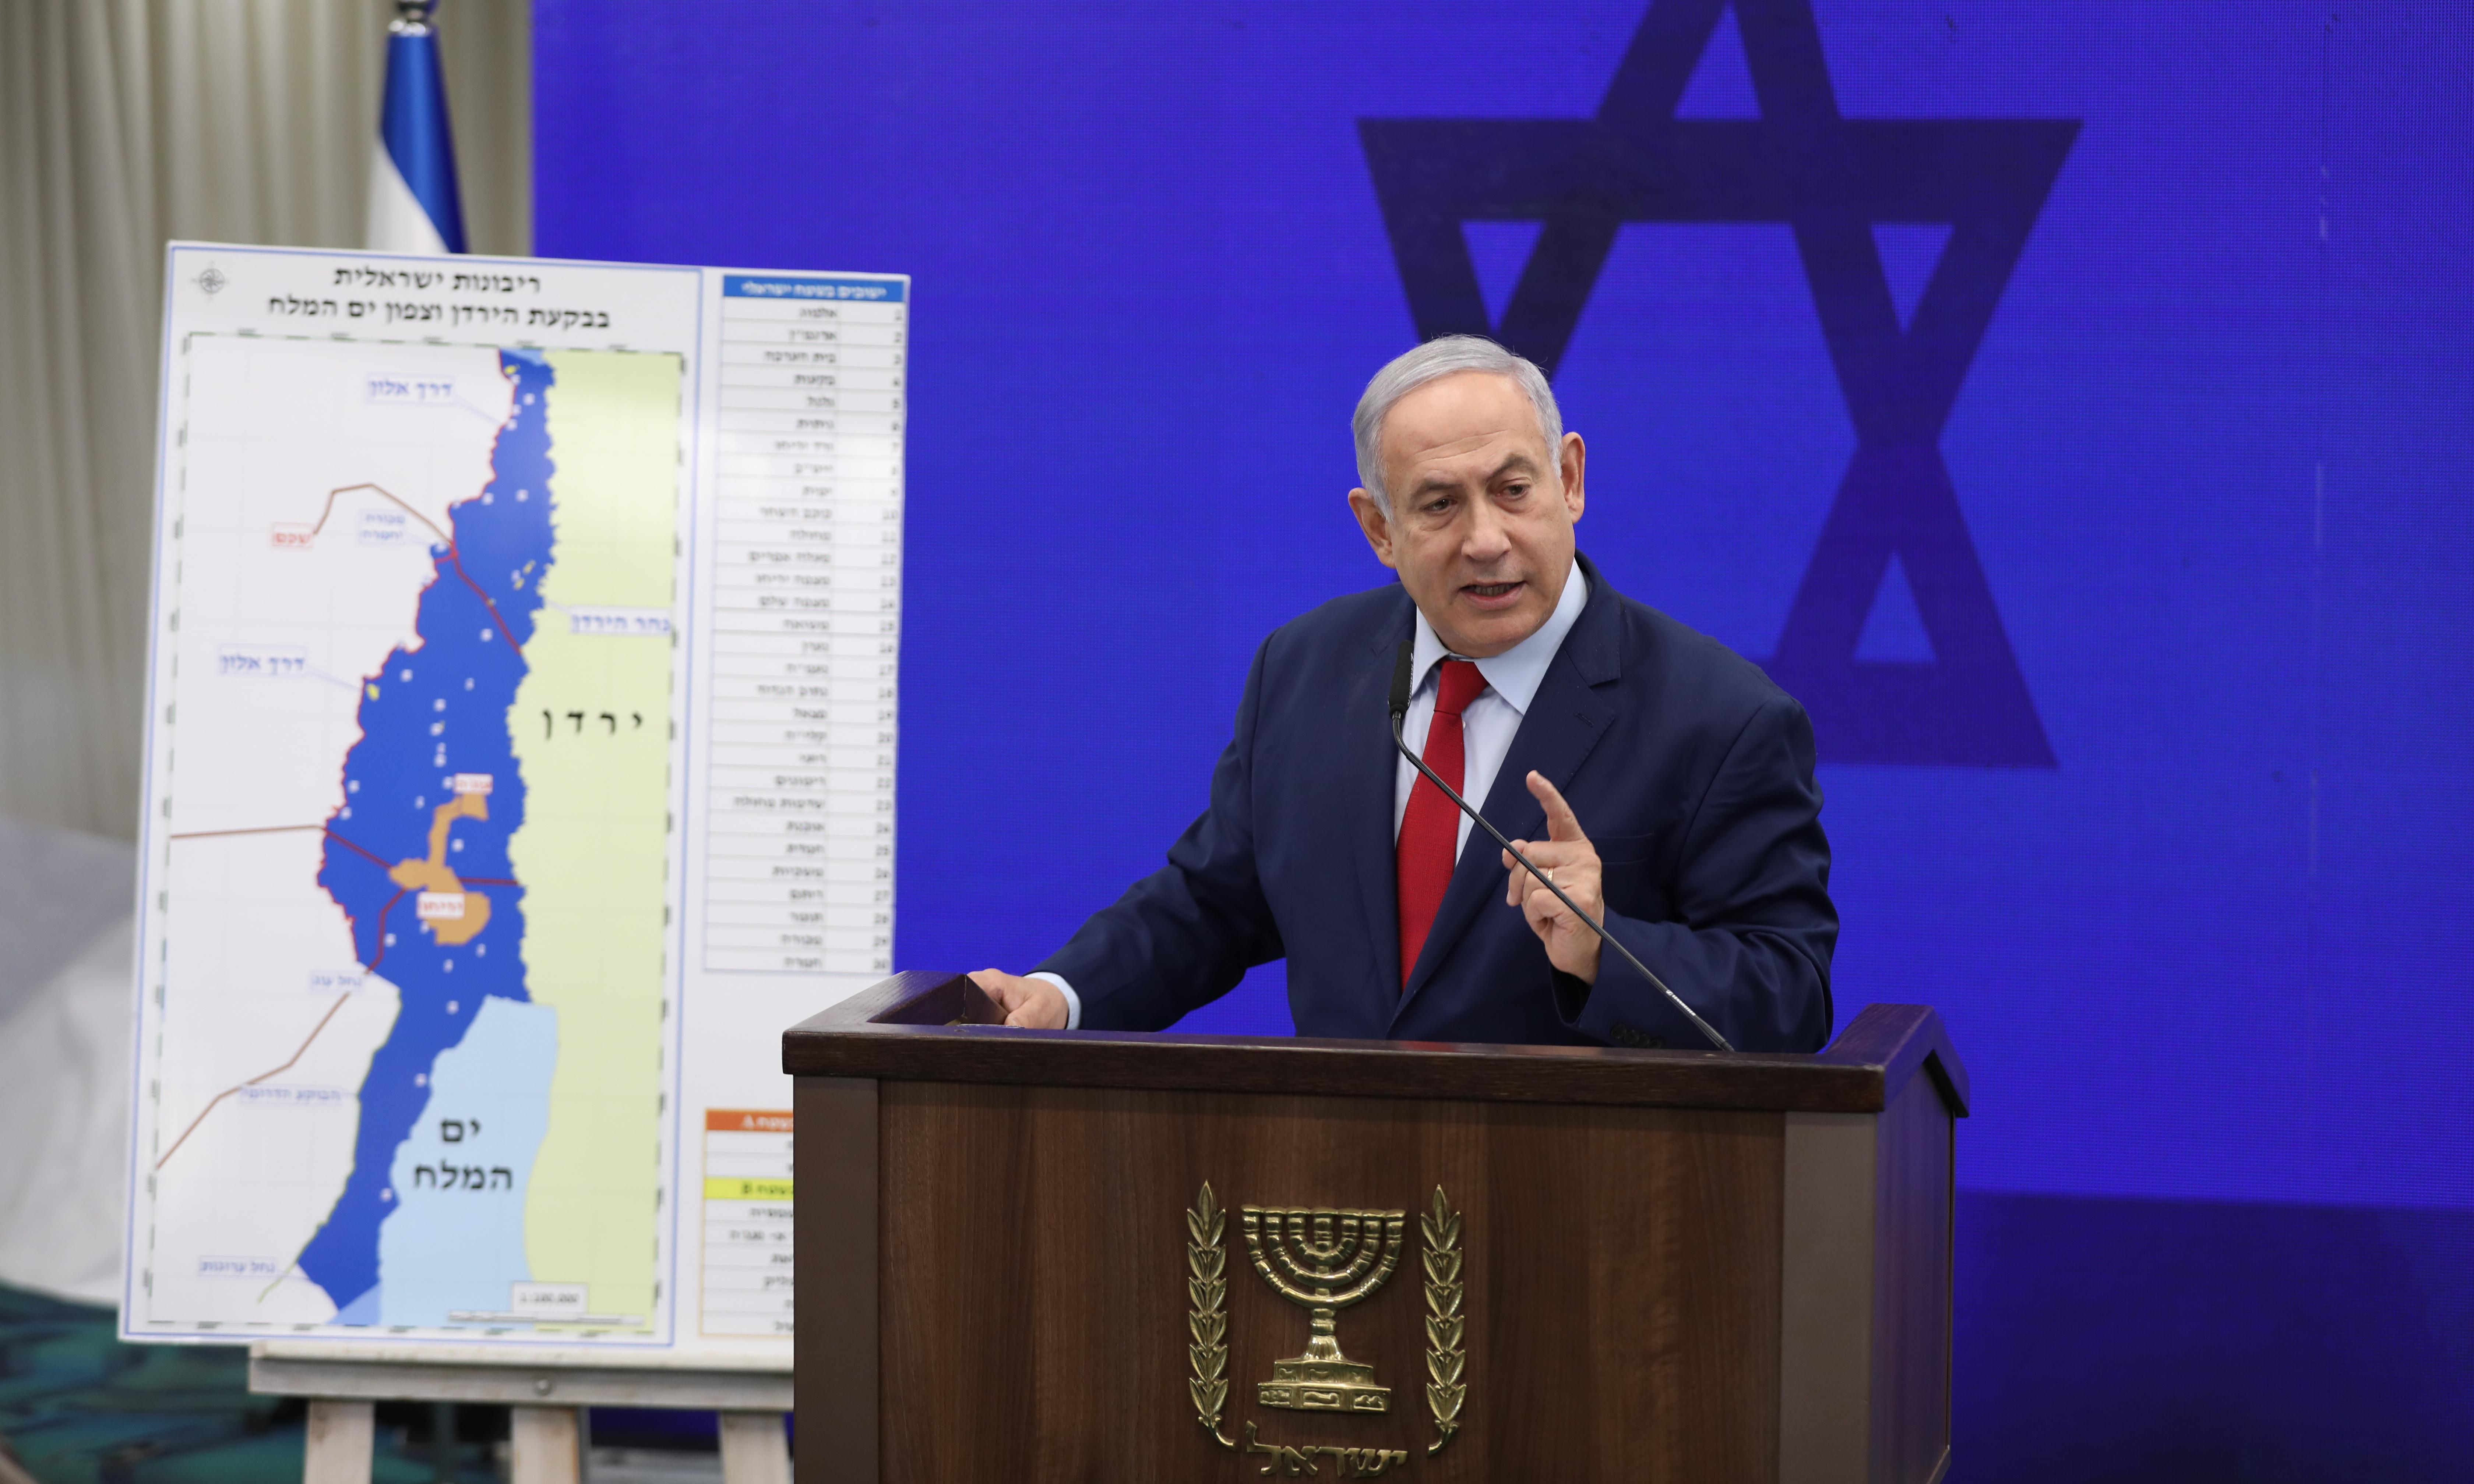 Netanyahu vows to annex large parts of occupied West Bank